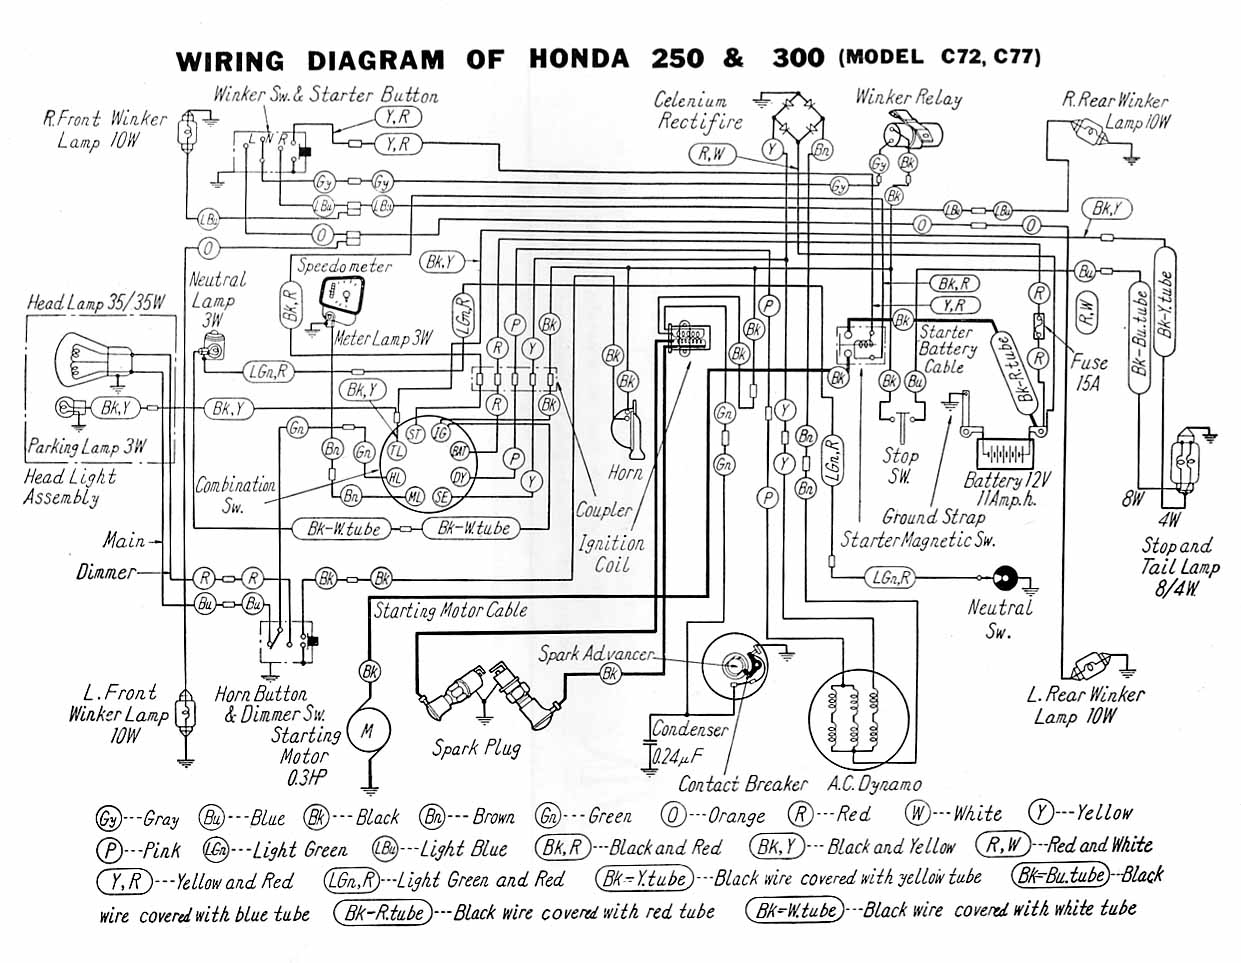 Honda C72 C77 Wiring Diagram index of images 3 3e 1971 yamaha ct1 175 wiring diagram at crackthecode.co